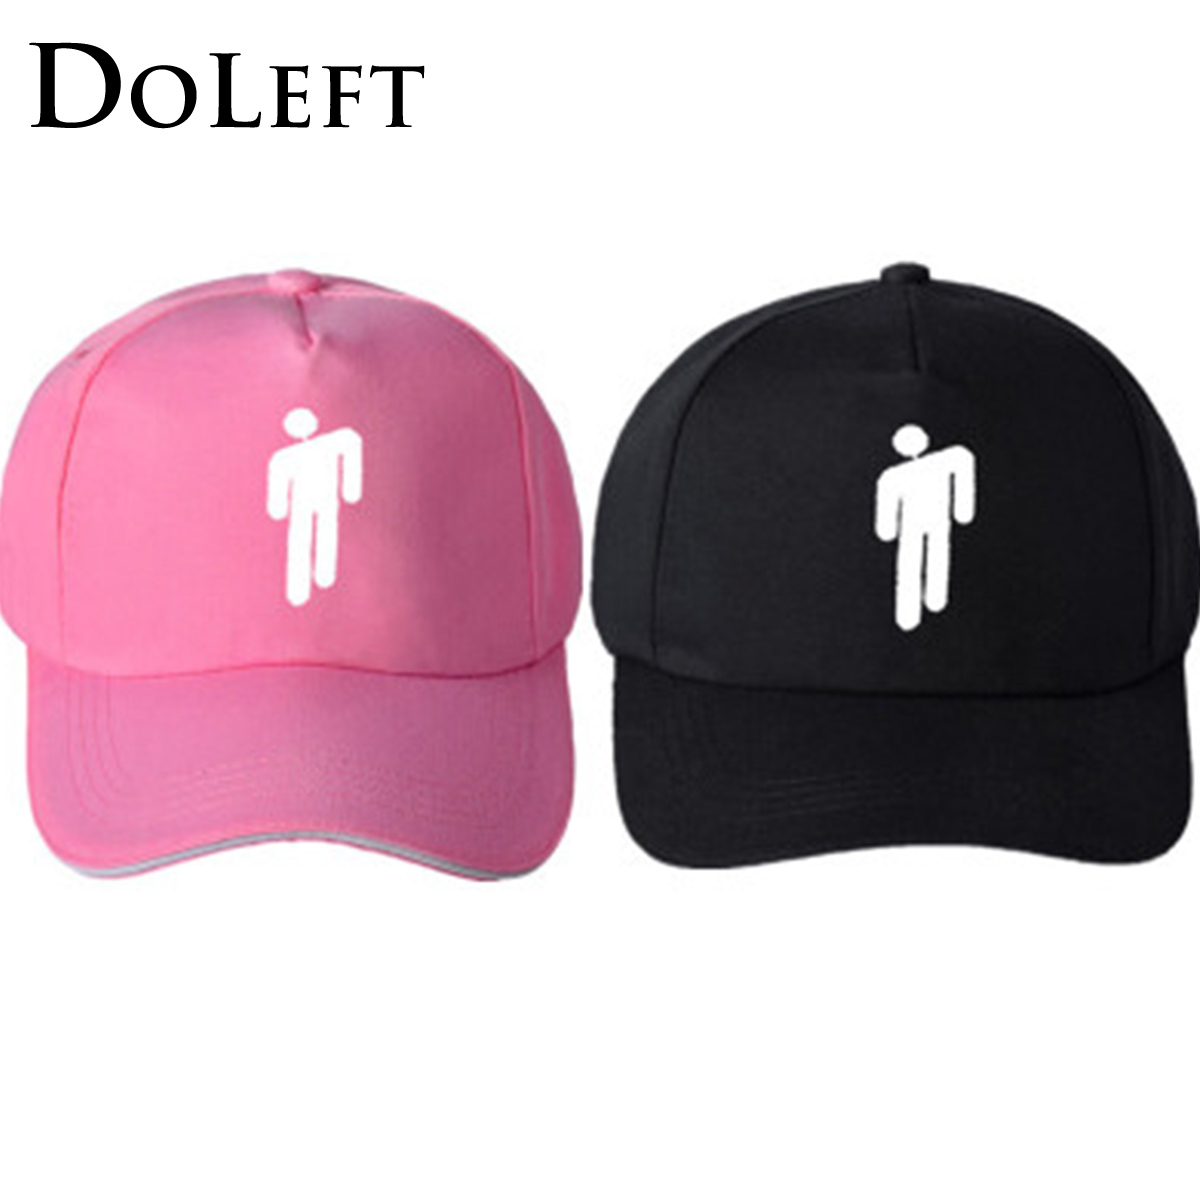 2019 Billie Eilish Baseball Caps Adjustable Streetwear Hiphop Caps Snapback Unisex Cool Cotton Dad Hat Billie Eilish Beanie Hats